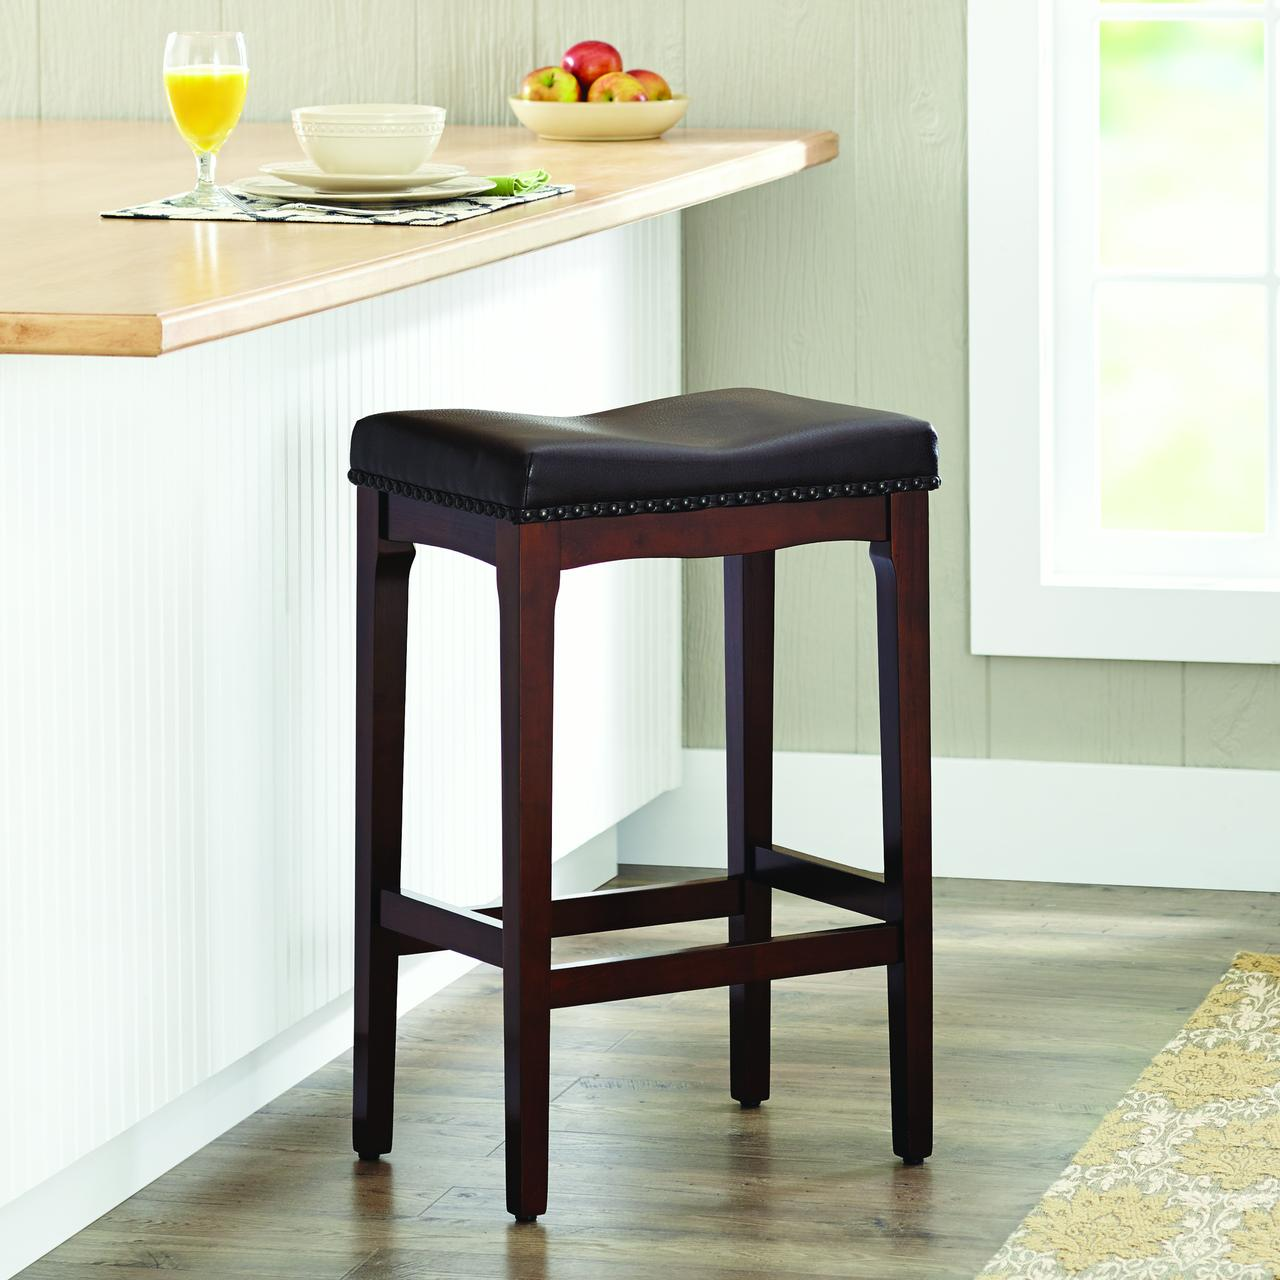 Better Homes and Gardens Padded Saddle Stool Cherry